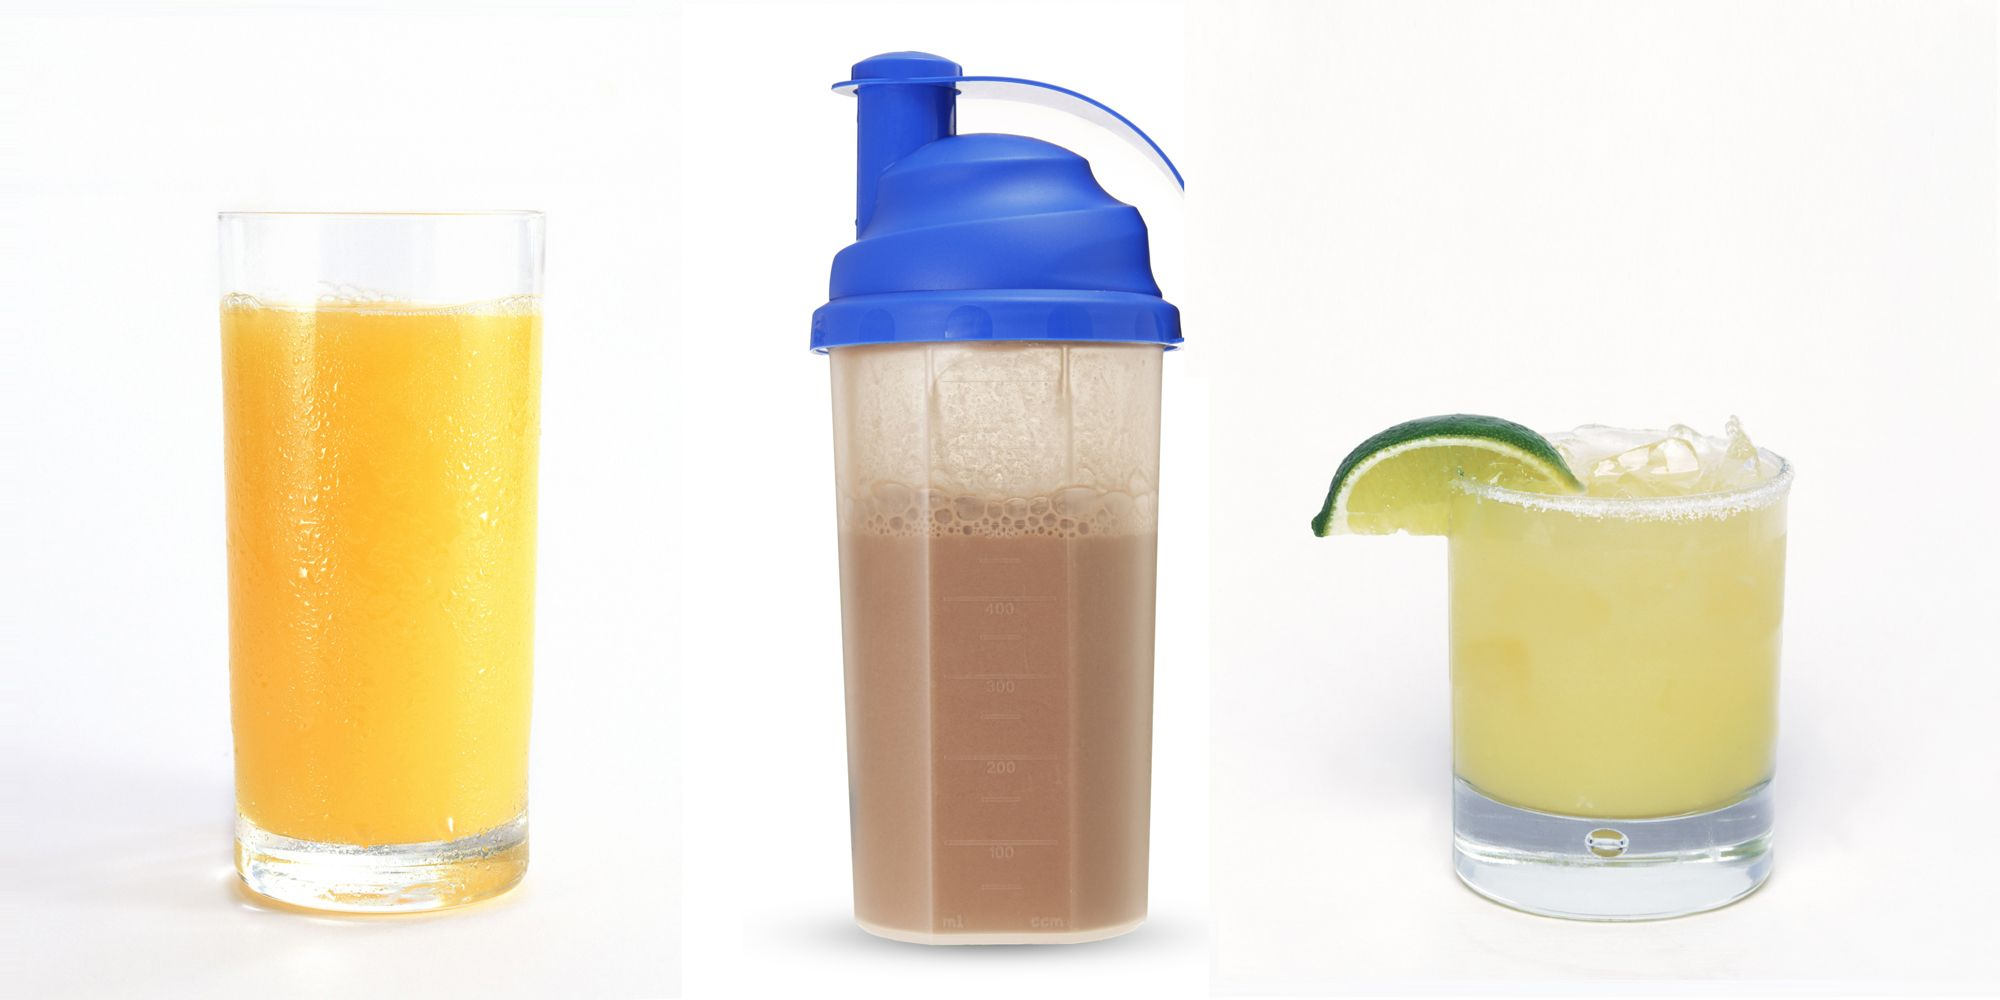 10 Drinks You Should Never Drink - Unhealthy Drinks